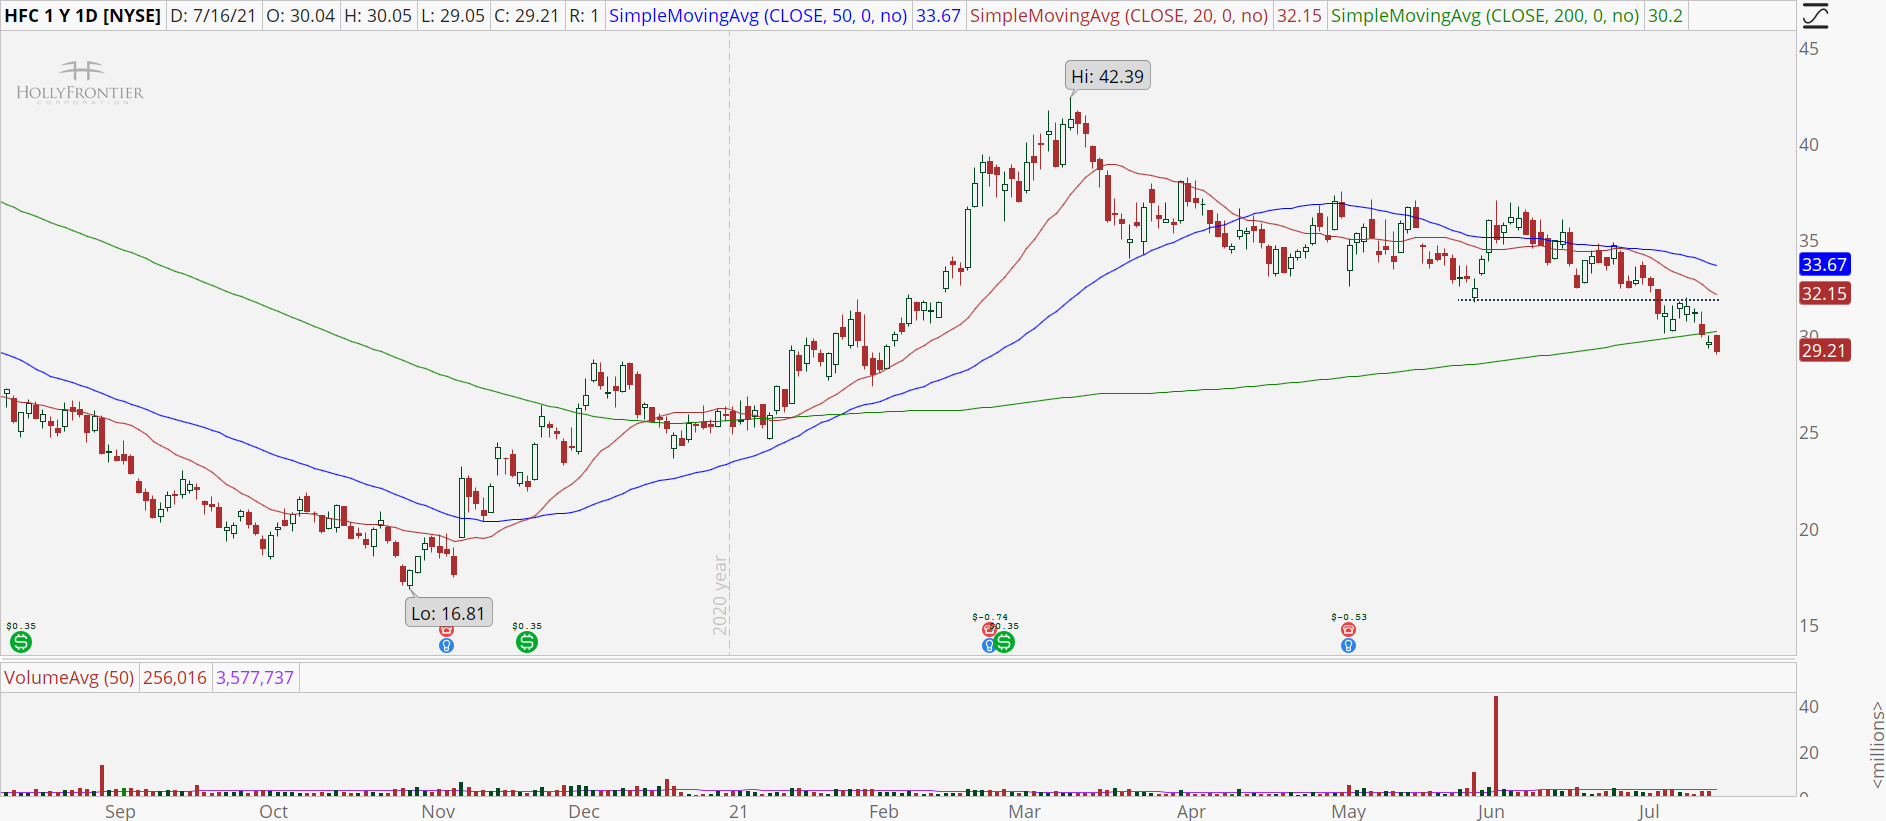 HollyFrontier Corp (HFC) stock chart with downtrend.